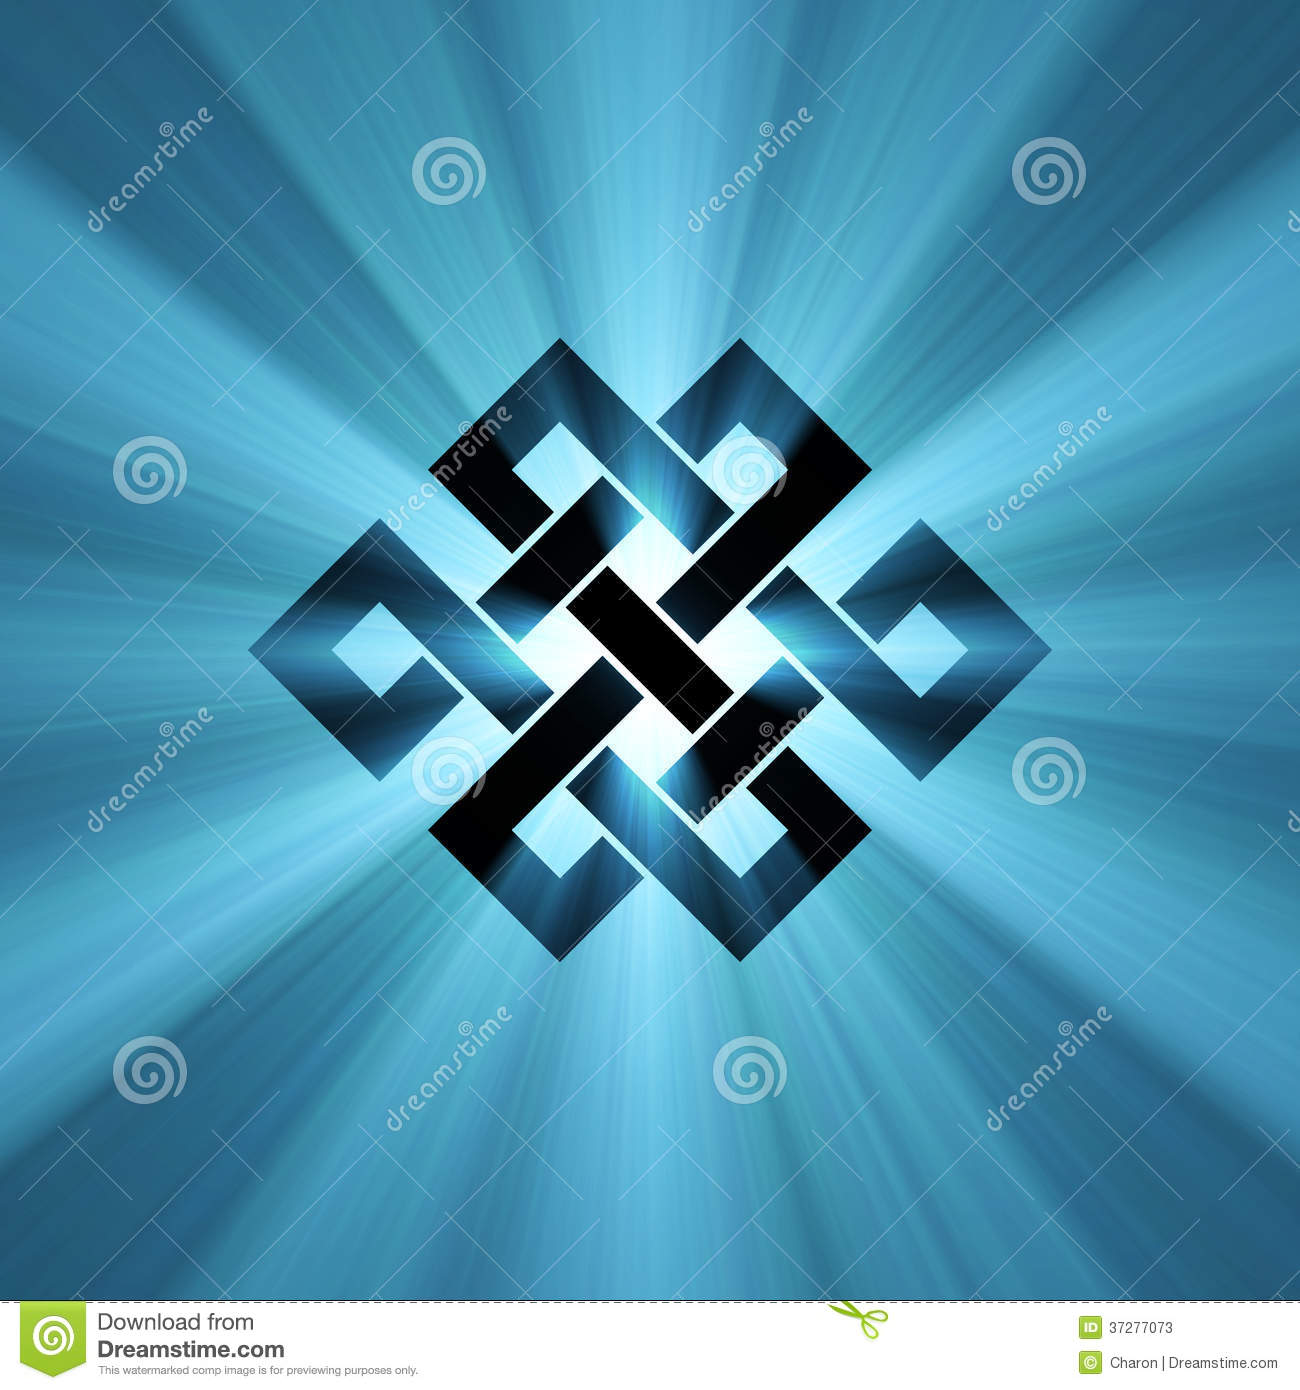 Endless knot (Eternal knot) is a cultural symbol across Buddhism ...